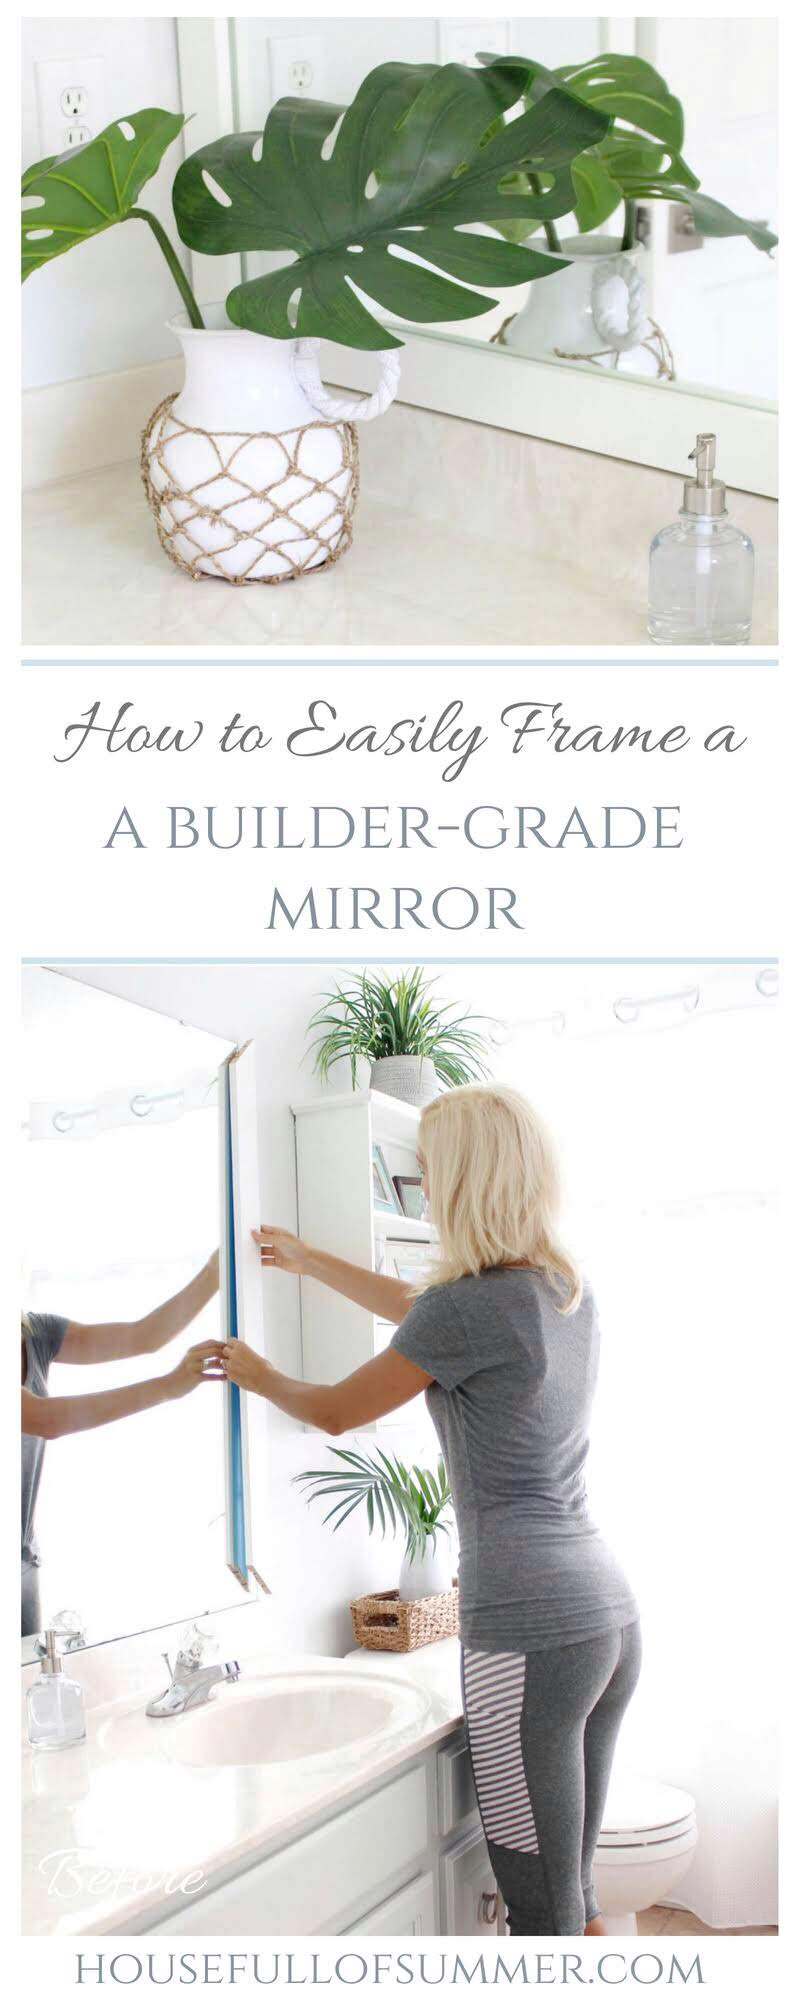 How to Easily Frame a Builder Grade Mirror | House Full of Summer - DIYs for the home, bathroom updates, decorating and updating a home on a budget.